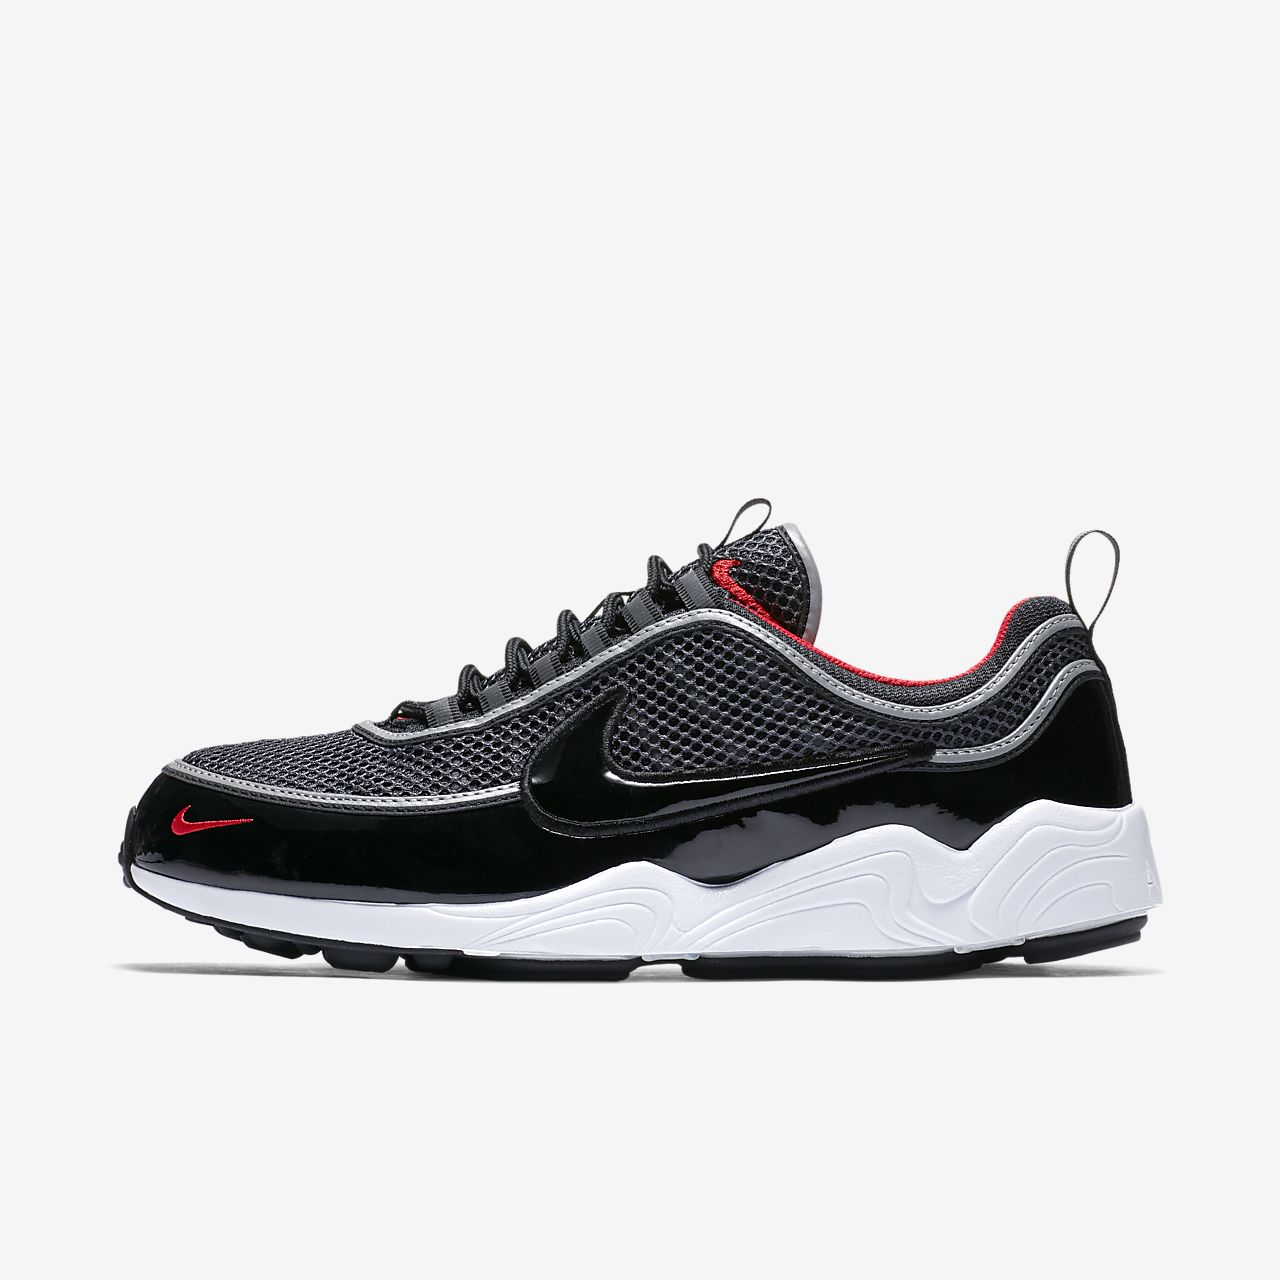 Nike Air Zoom Spiridon Ultra Sneaker Men's Lifestyle Comfy Shoes